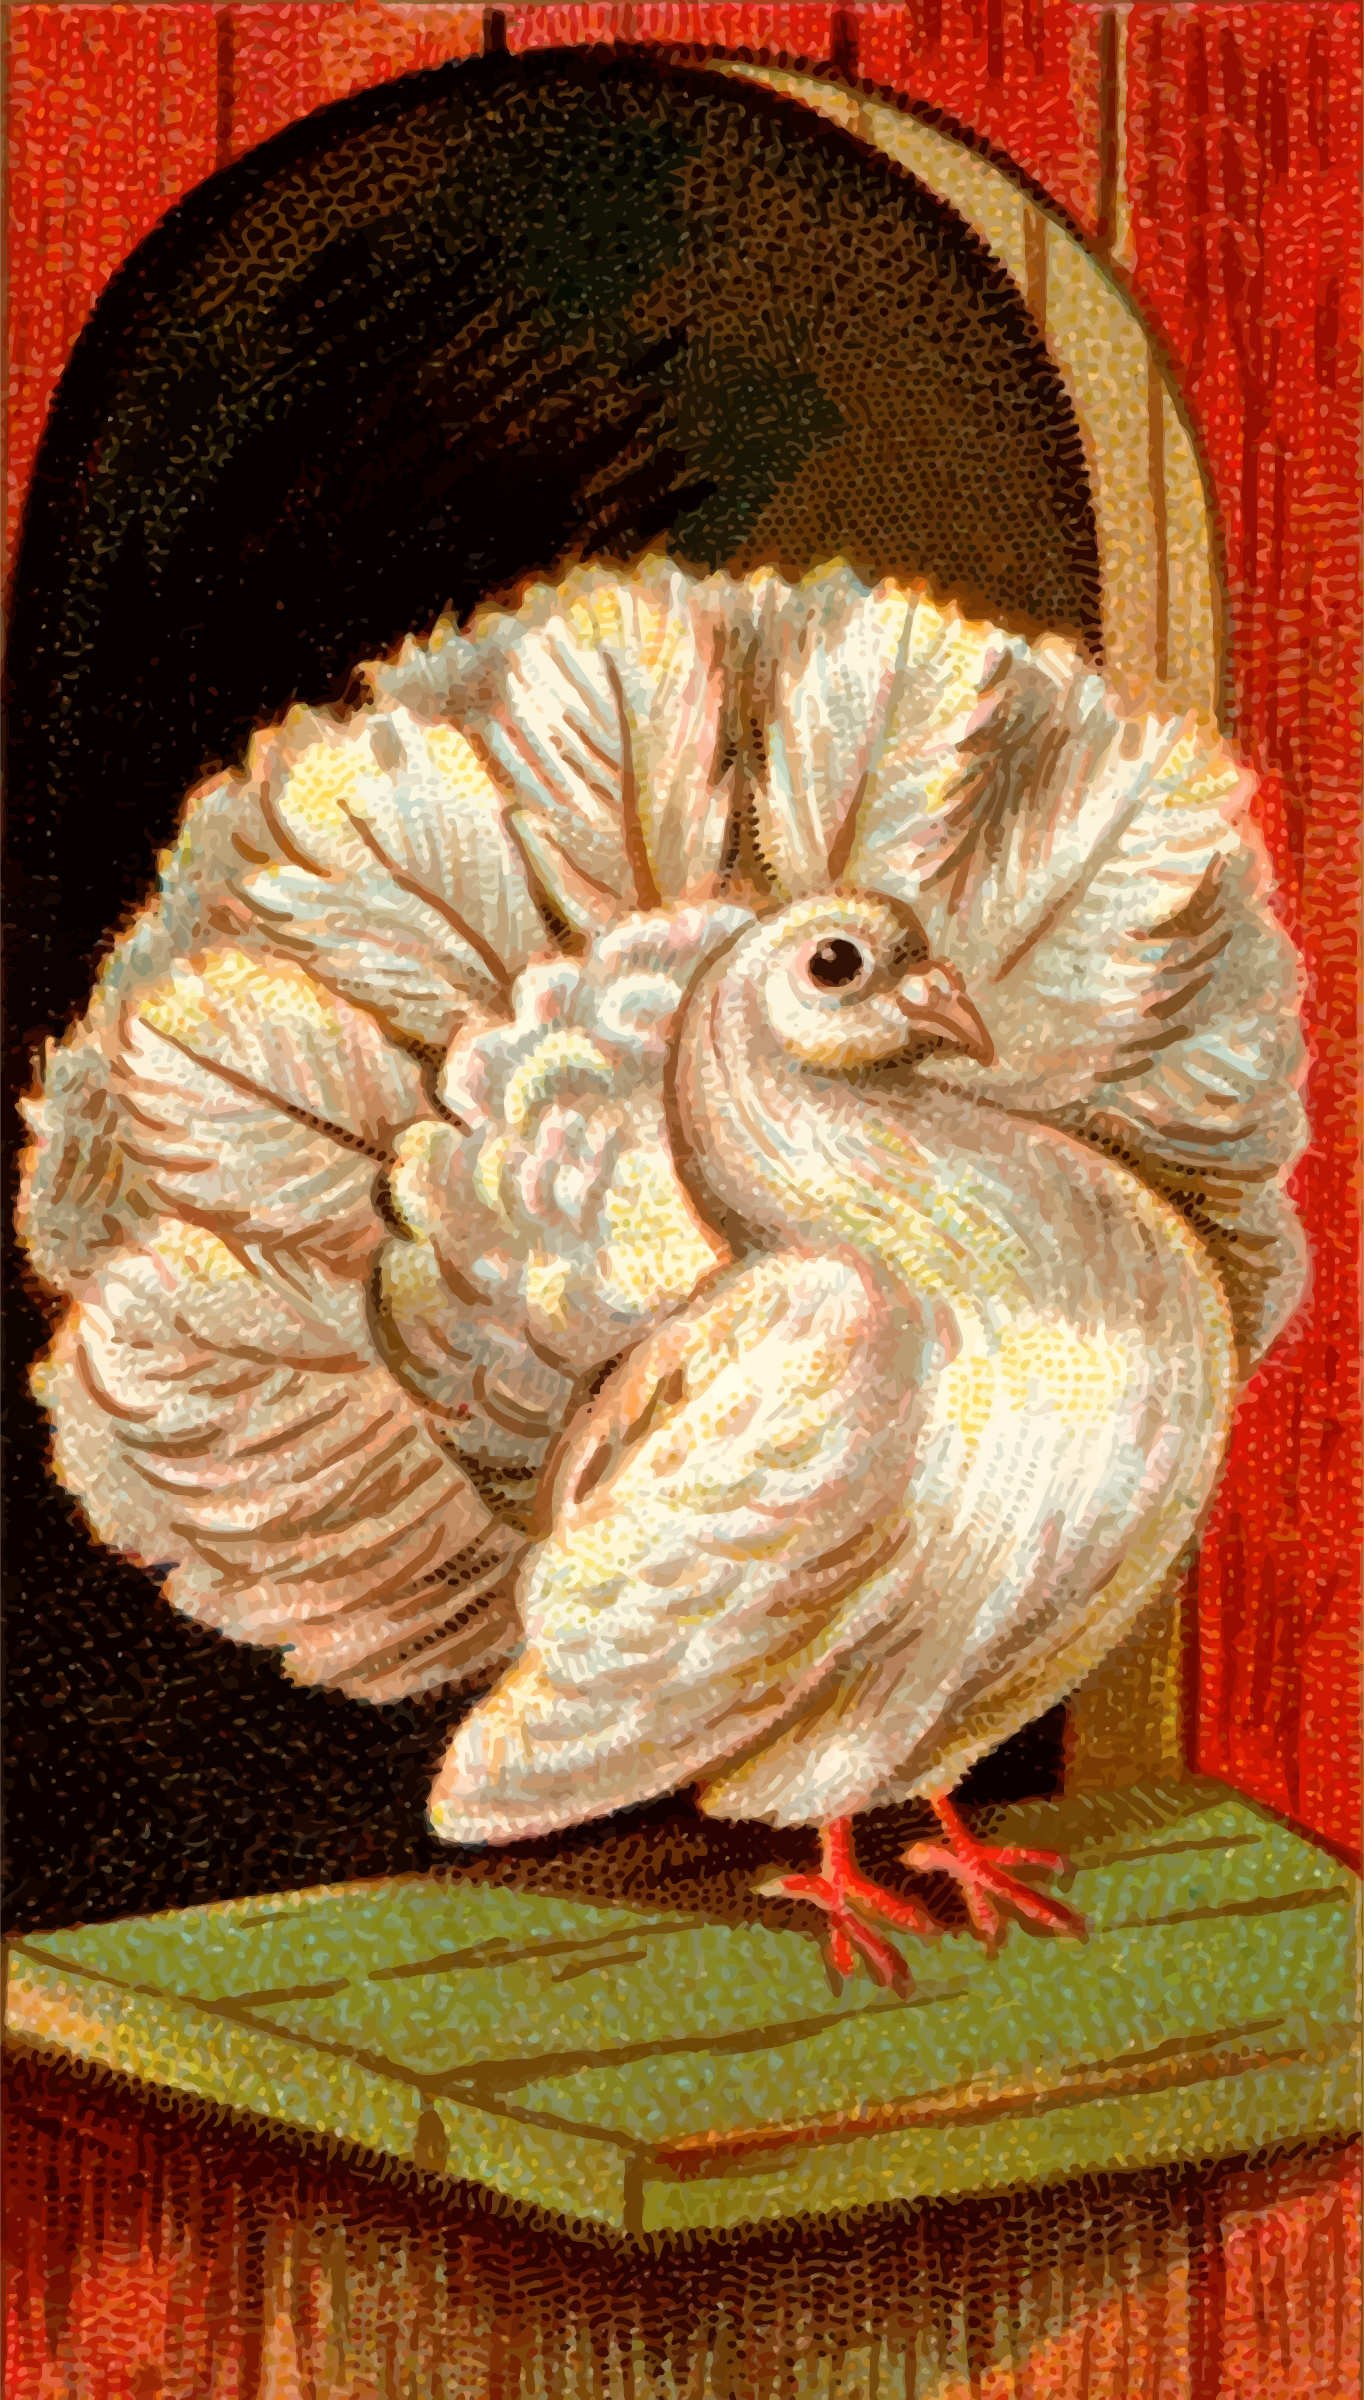 Cigarette card - Fantail Pigeon by Firkin